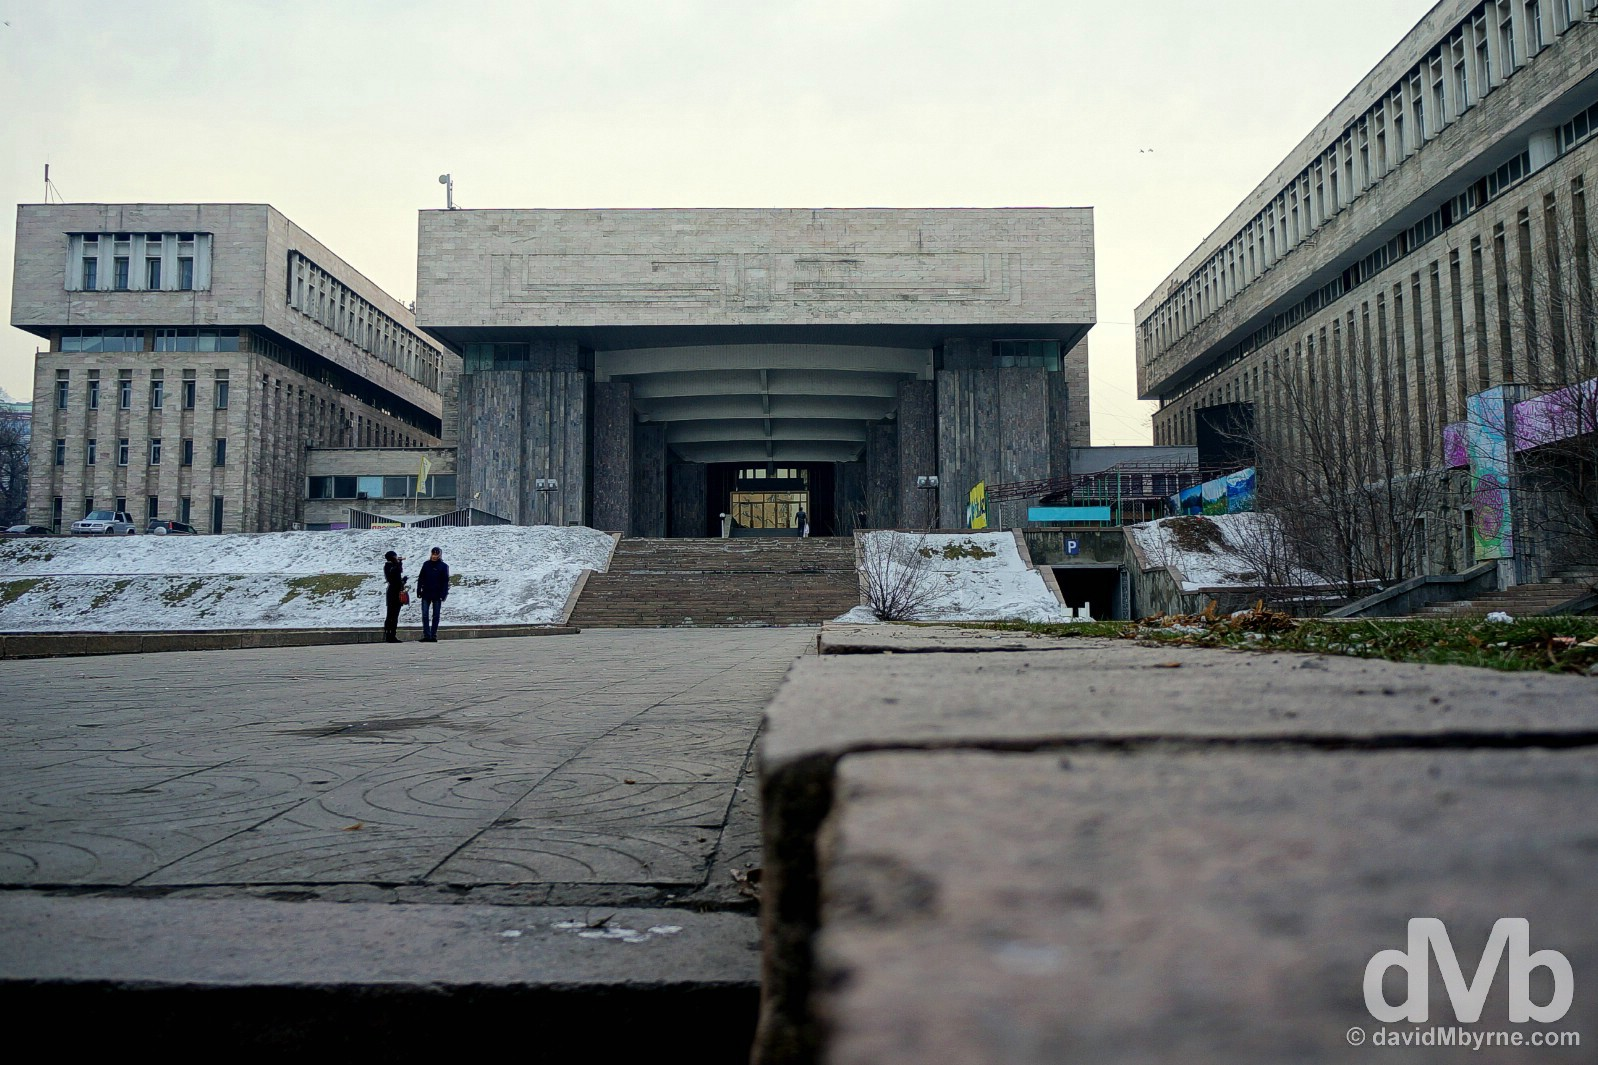 Soviet-era architecture on the streets of Almaty, Kazakhstan. February 14, 2015.